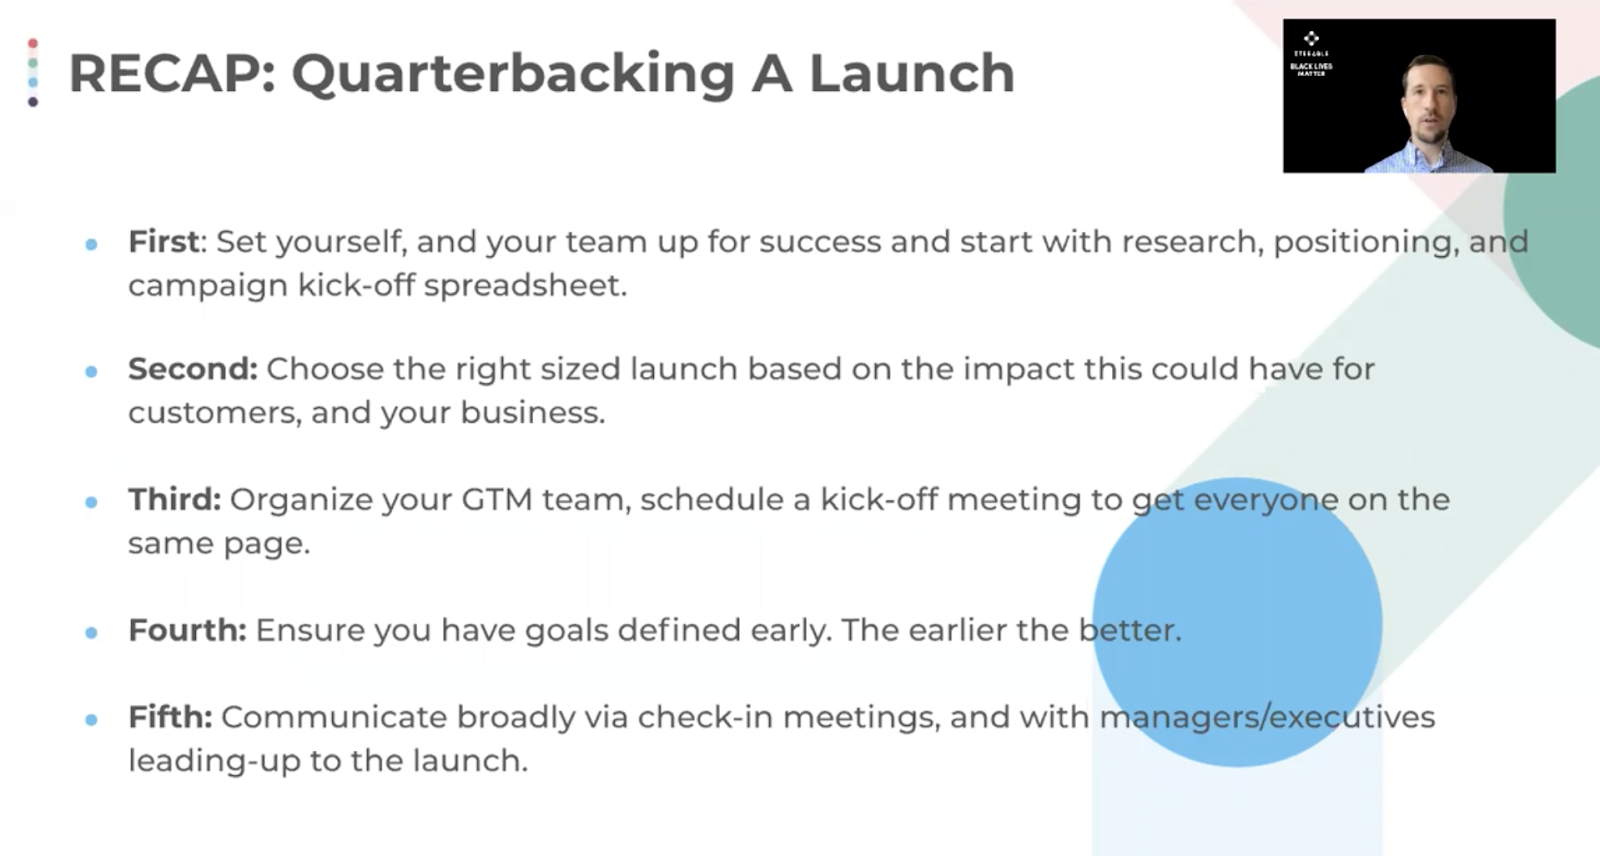 A summary of the key points outlined by Jeffrey Vocell on how to quarterback a launch.